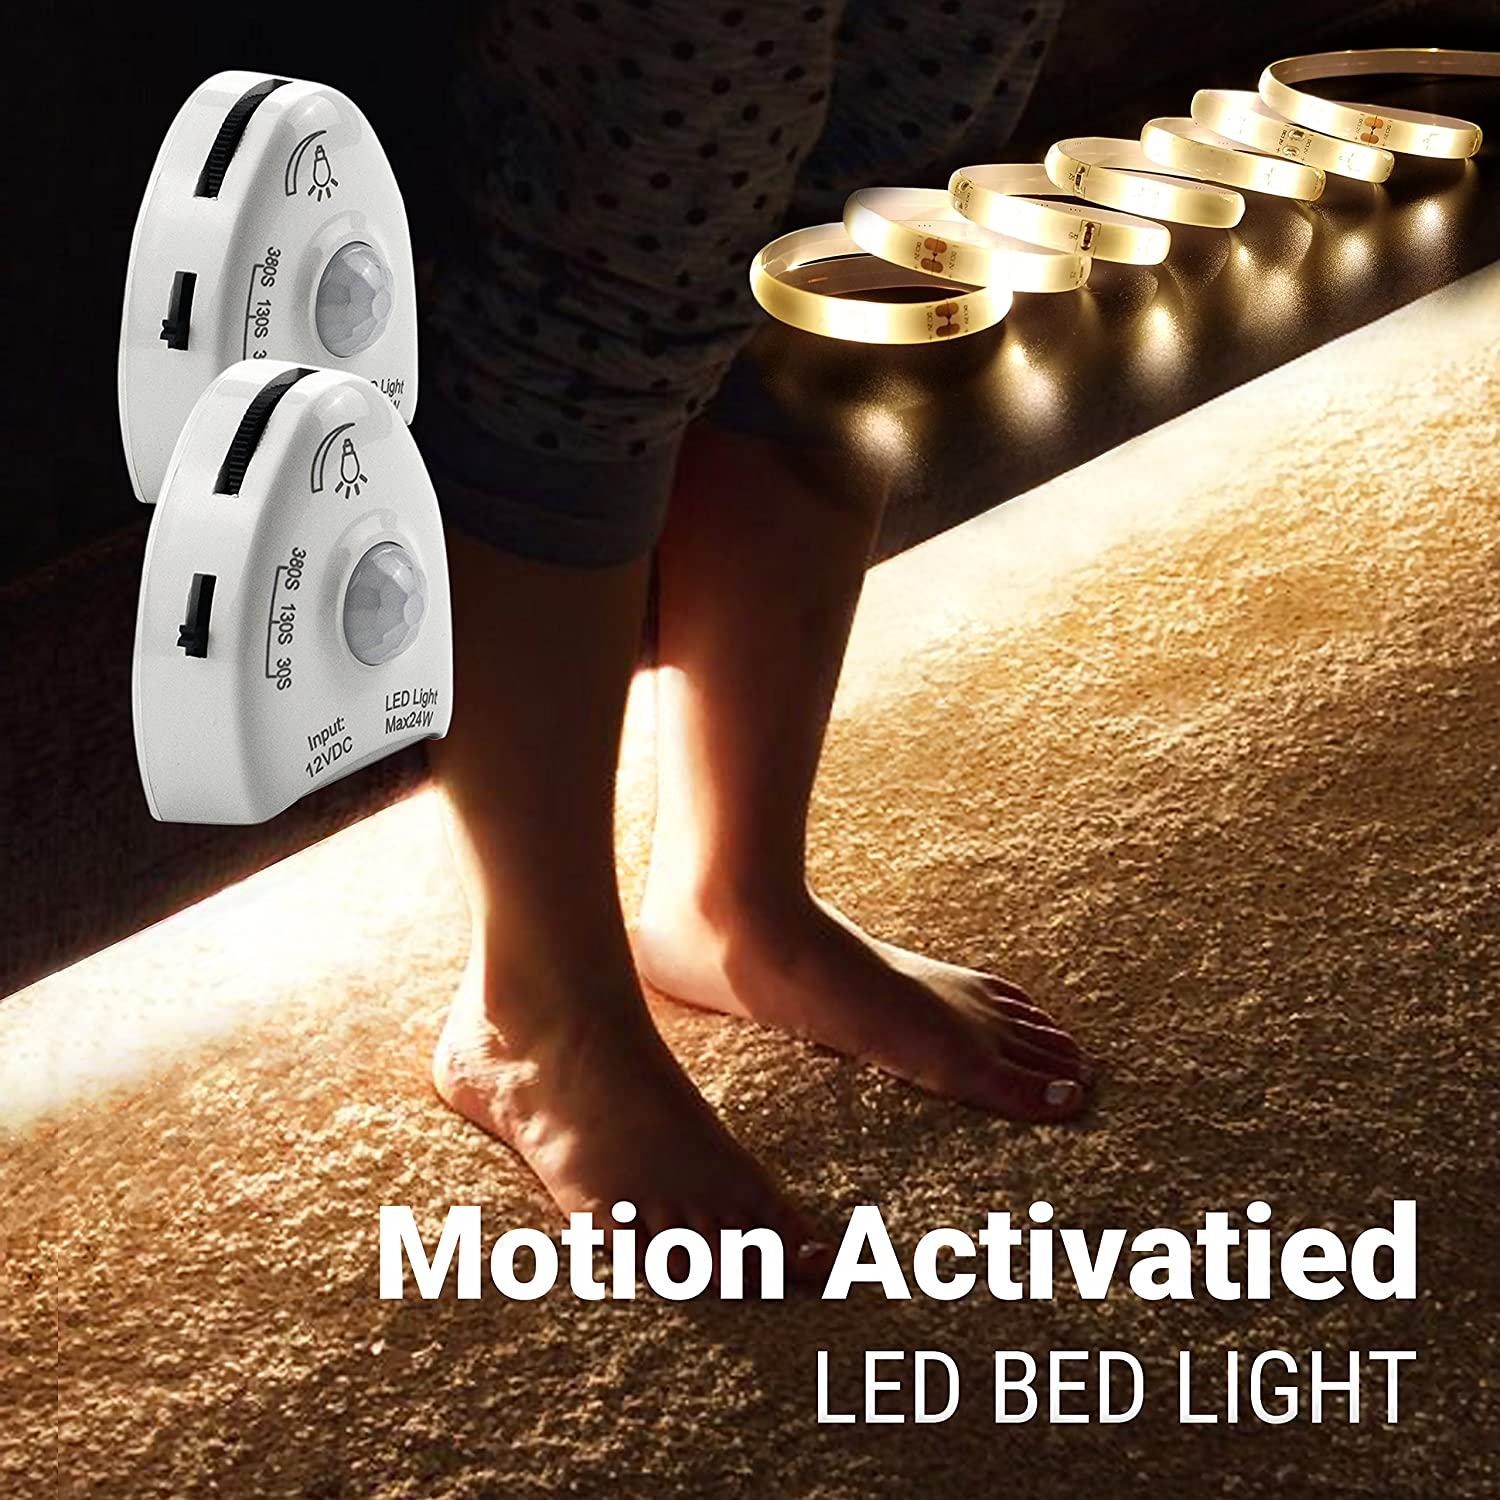 Motion Activated Night Light, illumiForce 5ft Under Bed LED Strip Light, Motion Sensor Navigation Light for Baby, Bedside, Stairs, Warm White Dimmable (Dual and Single)